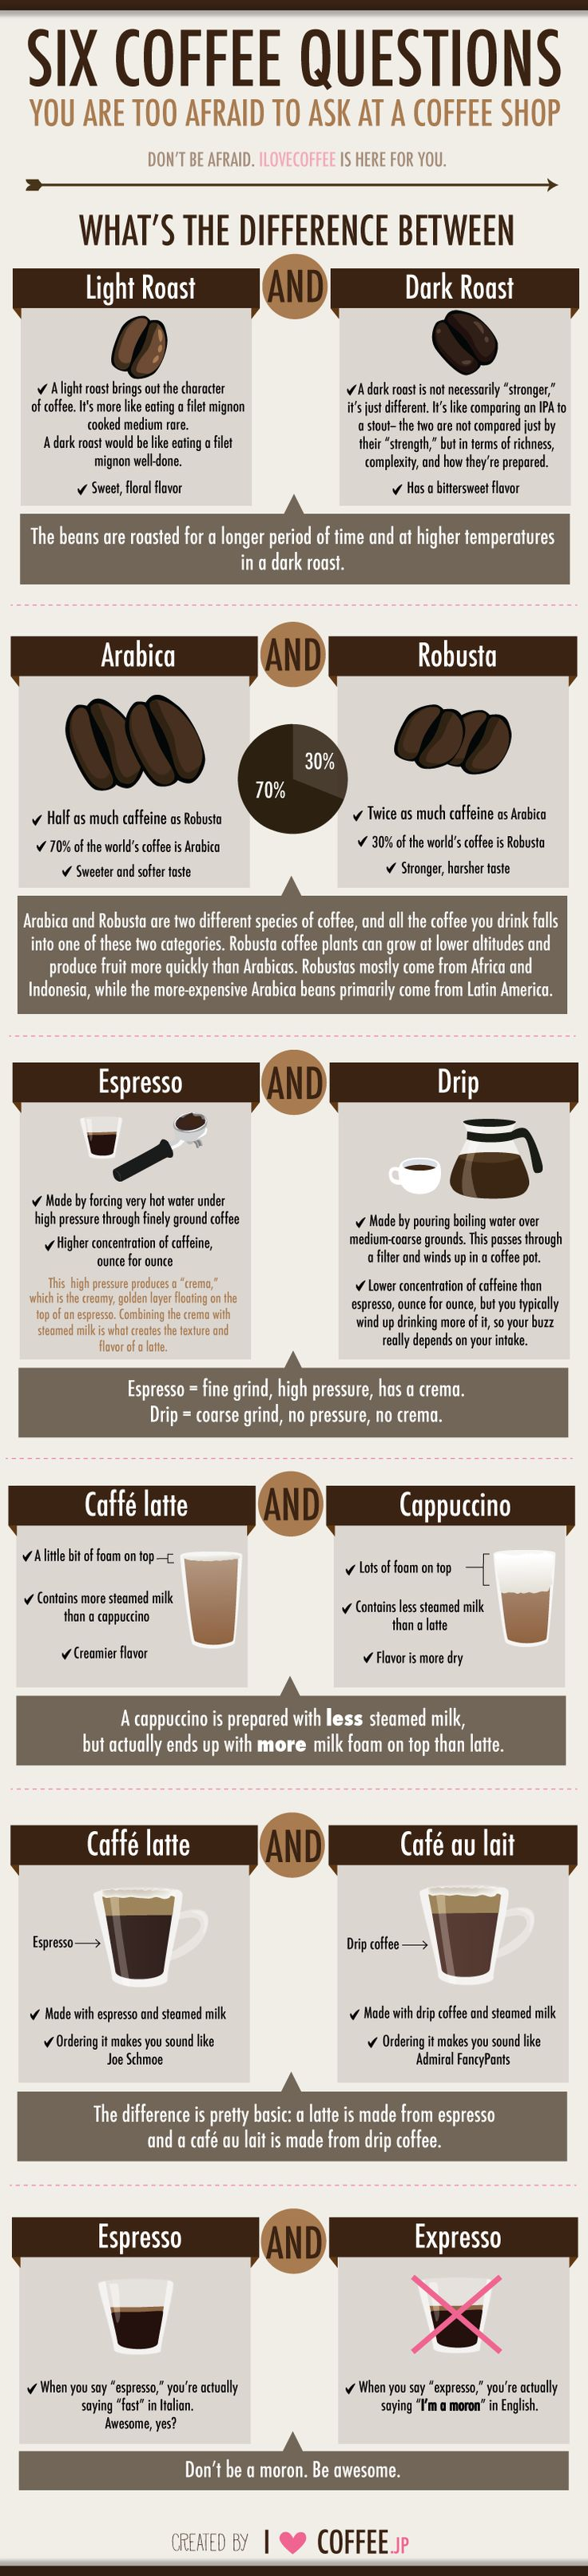 6 Coffee Secrets That You Don't Know